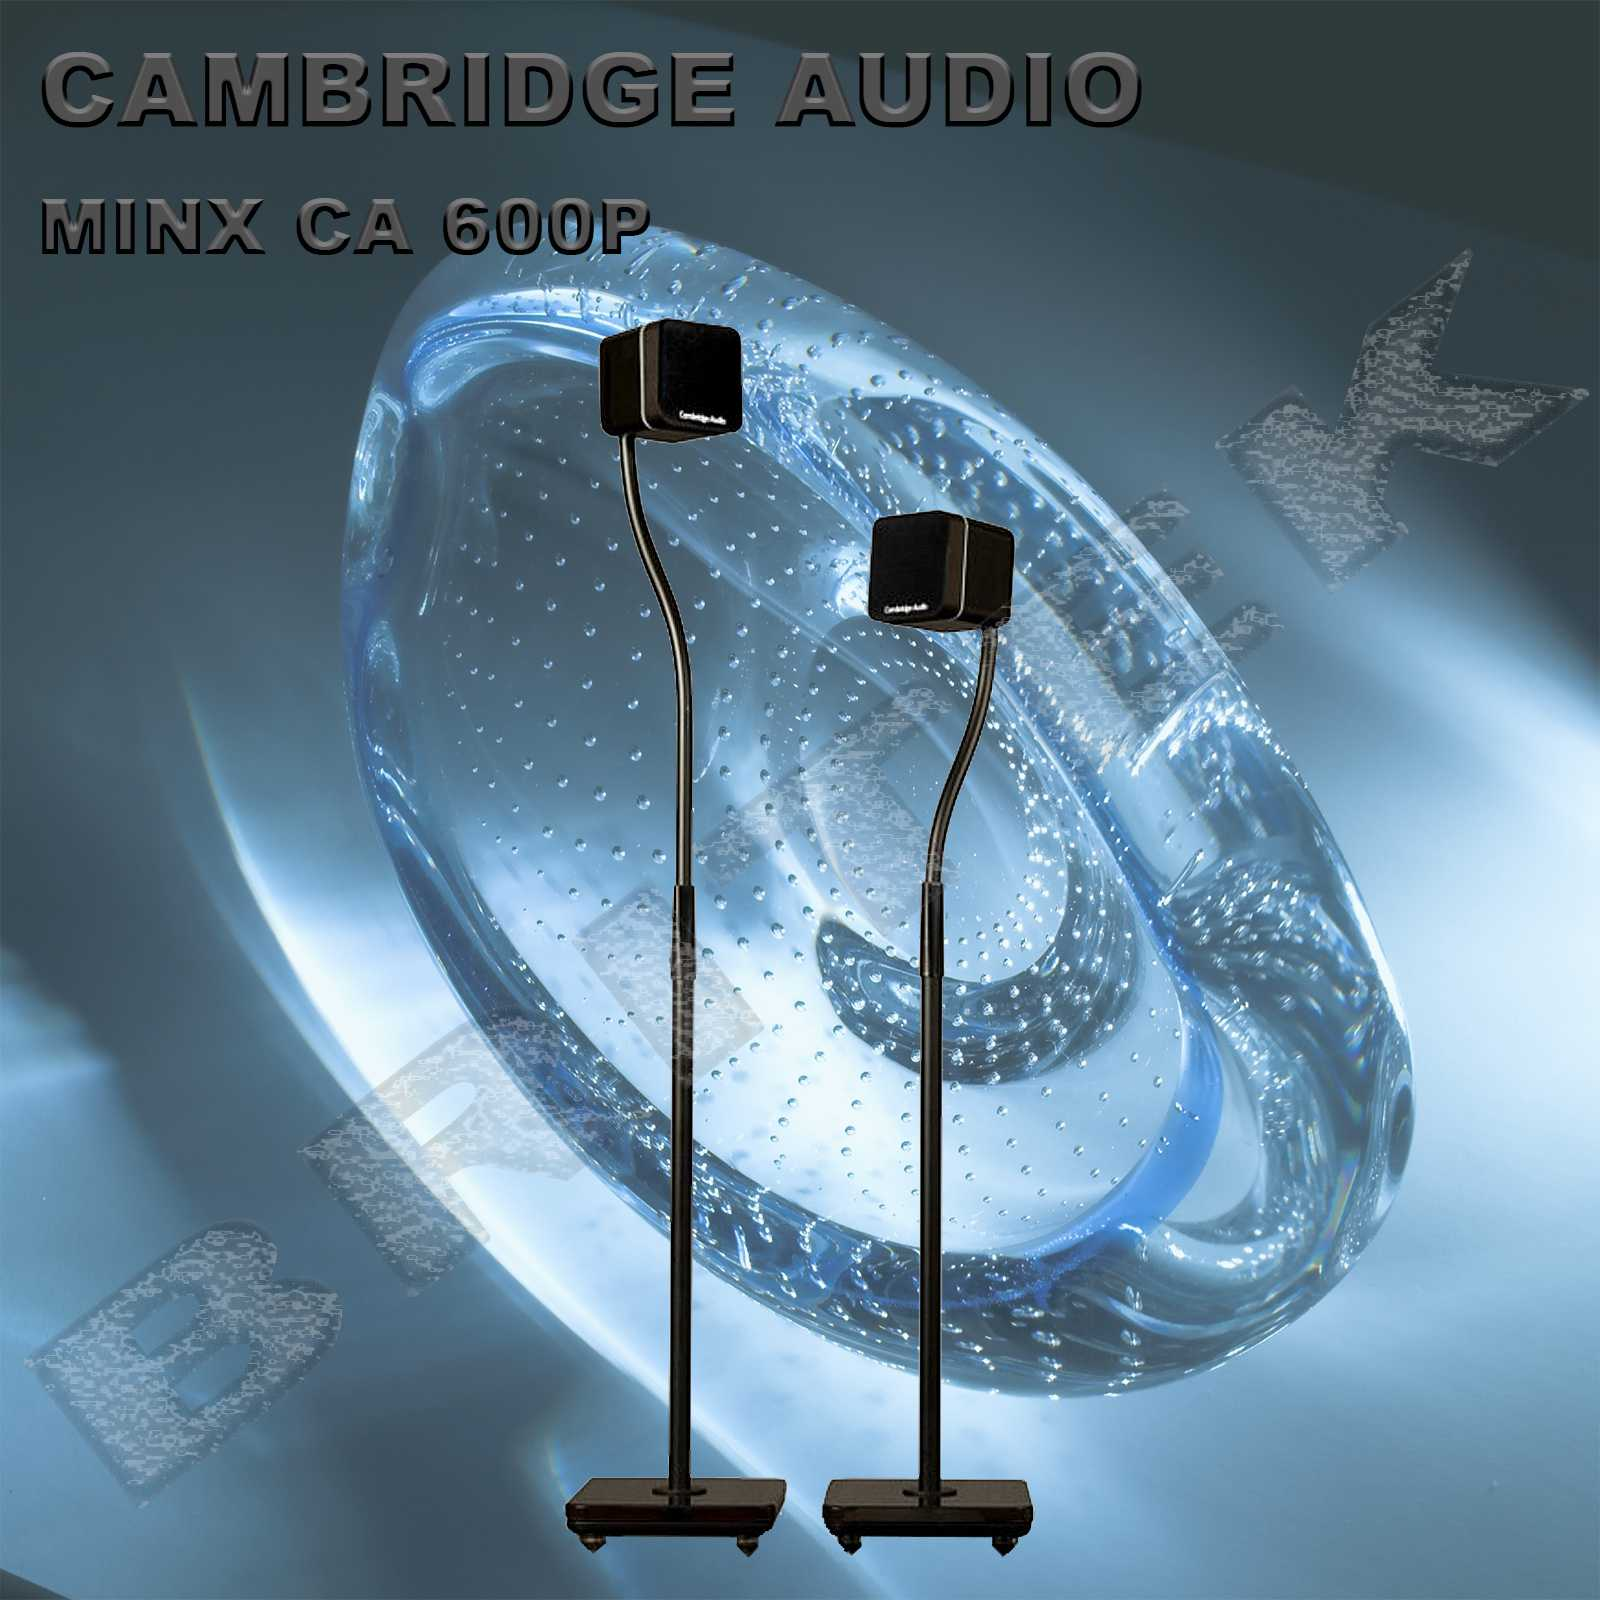 Cambridge Audio MINX CA 600P